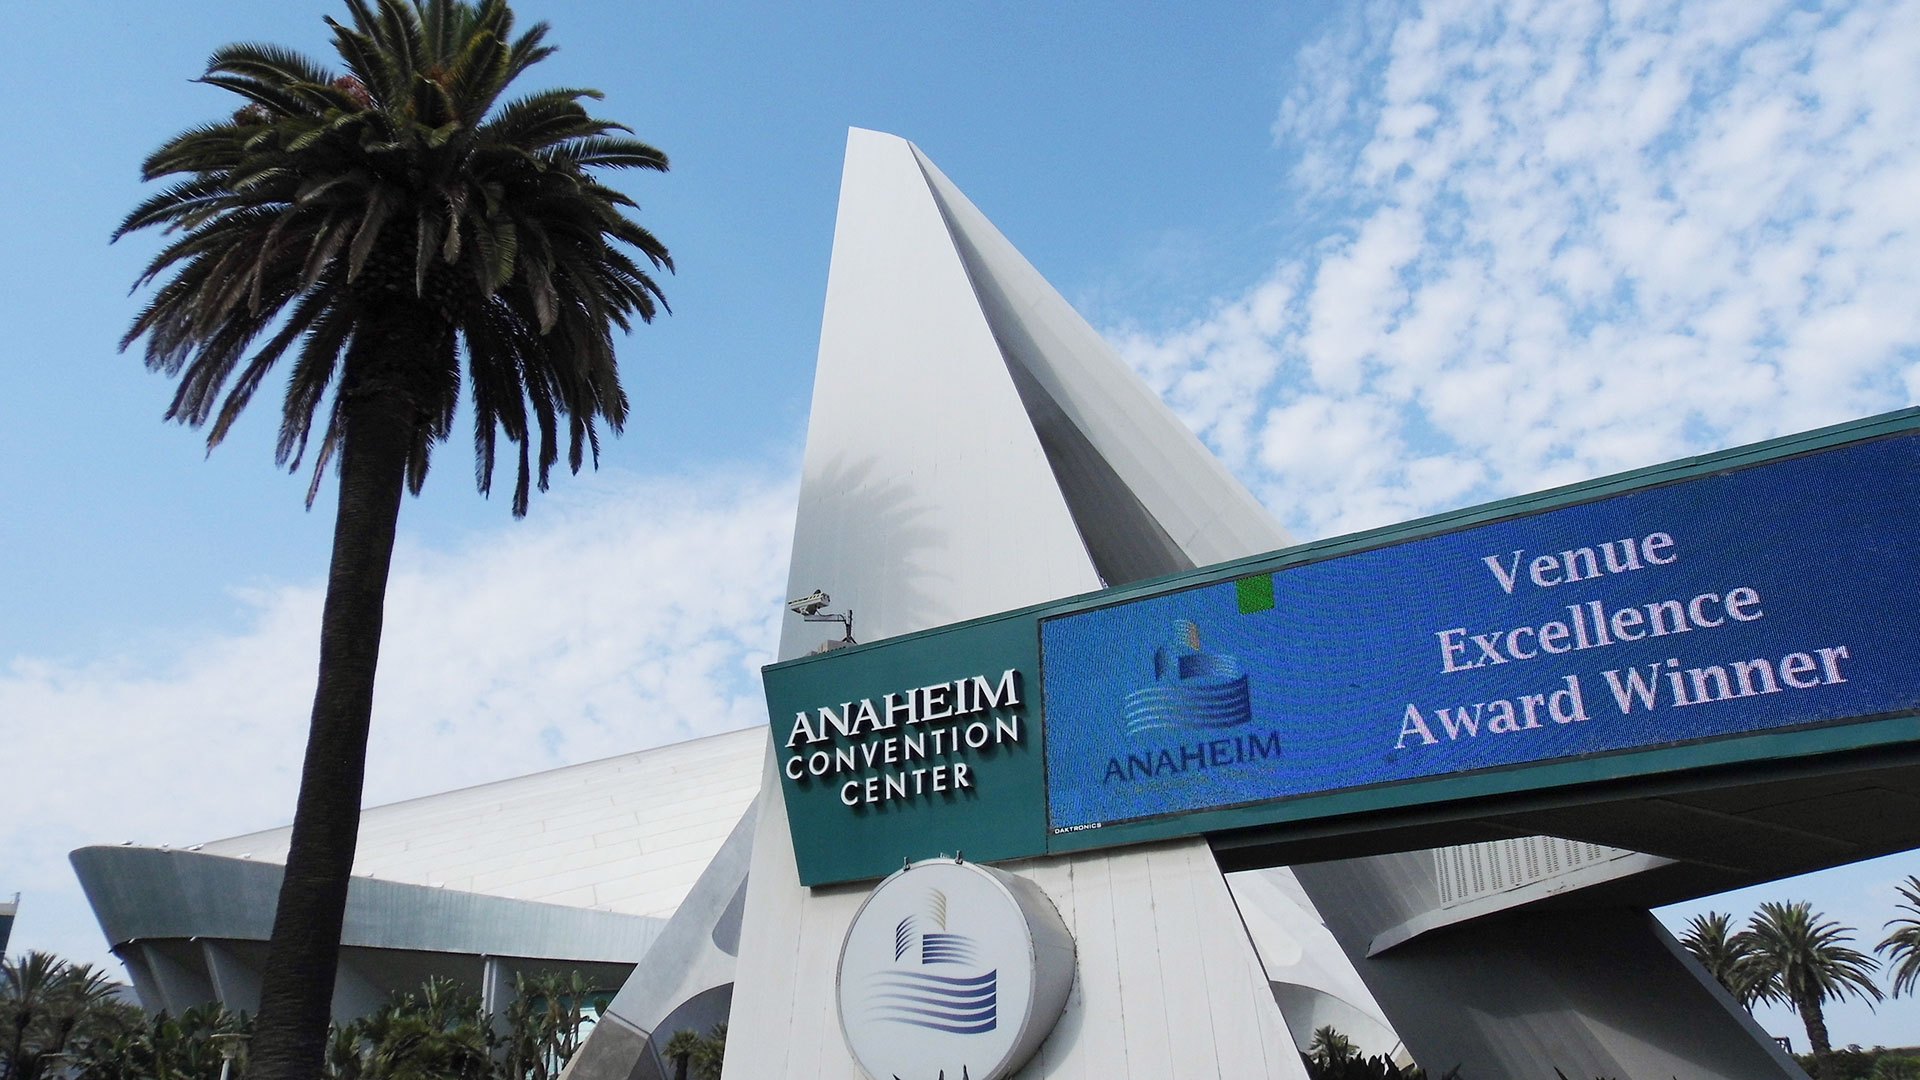 "The Anaheim Arena displays an ""Venue Excellence Award Winner"" banner outside the arena."